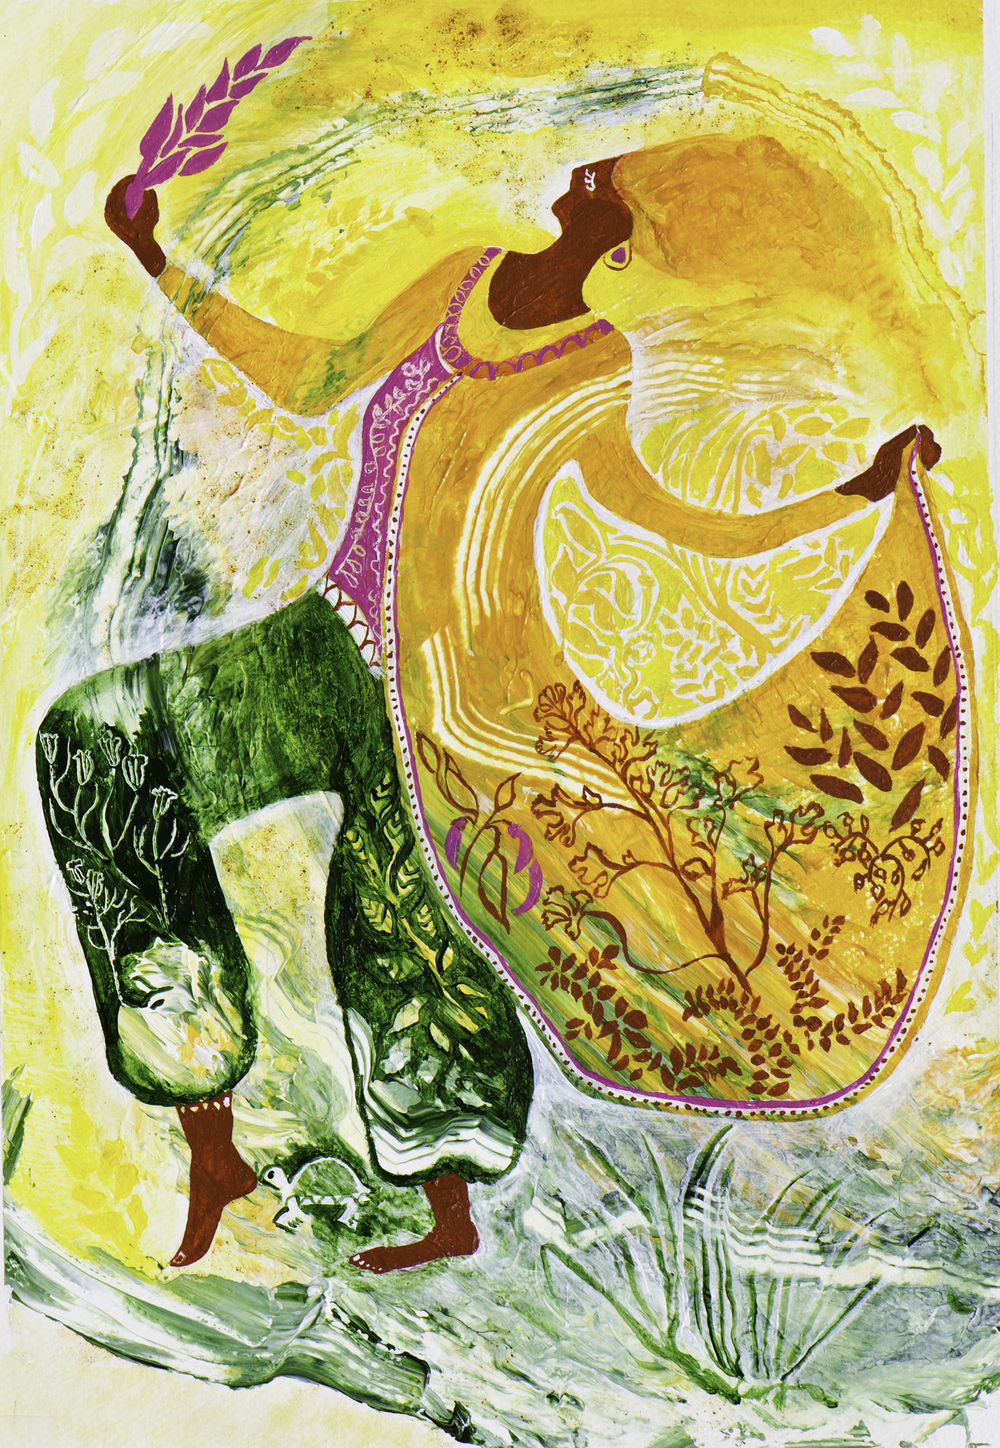 """Curry Queen"" by Gretchen Butler - Painted in Turmeric & Healing Spices"